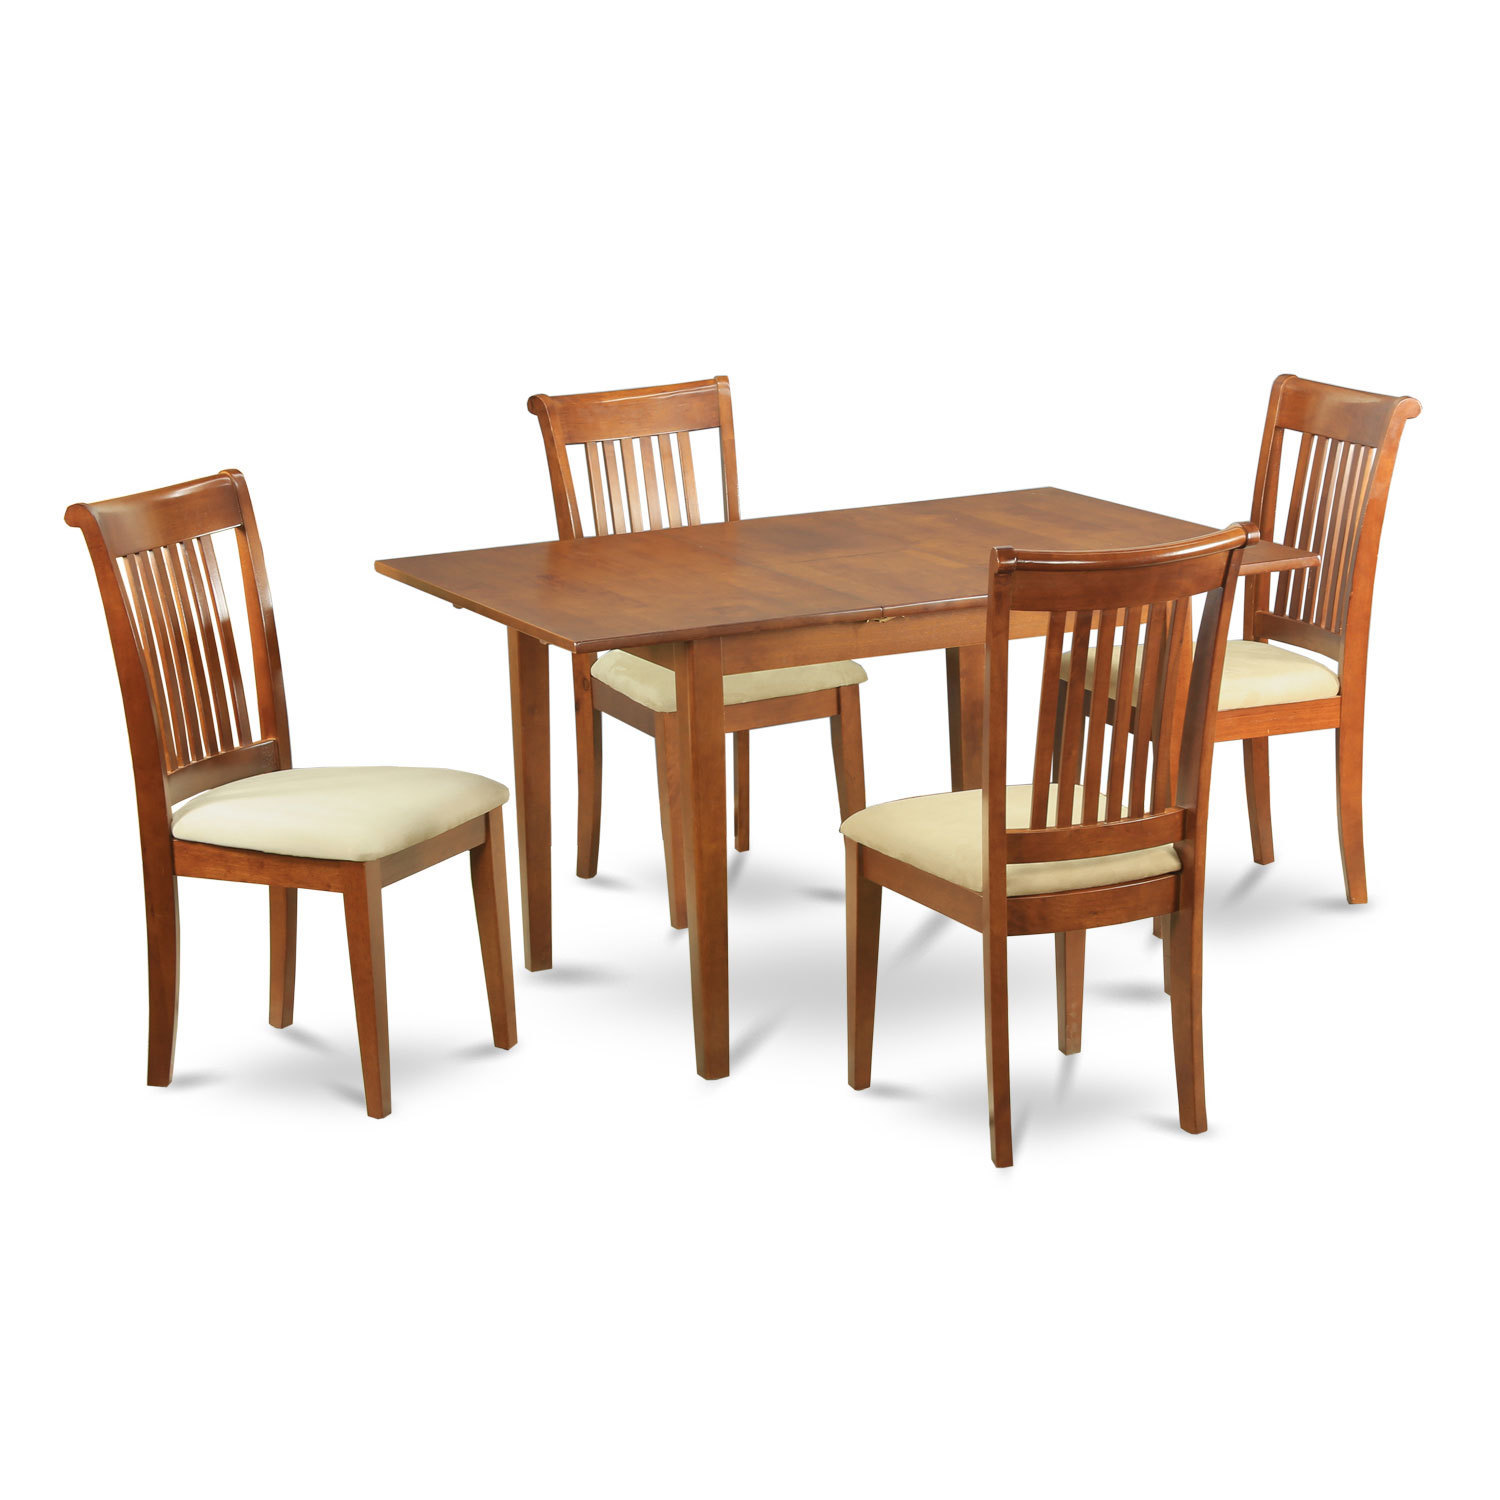 Small dinette set design homesfeed for Dining table and chairs